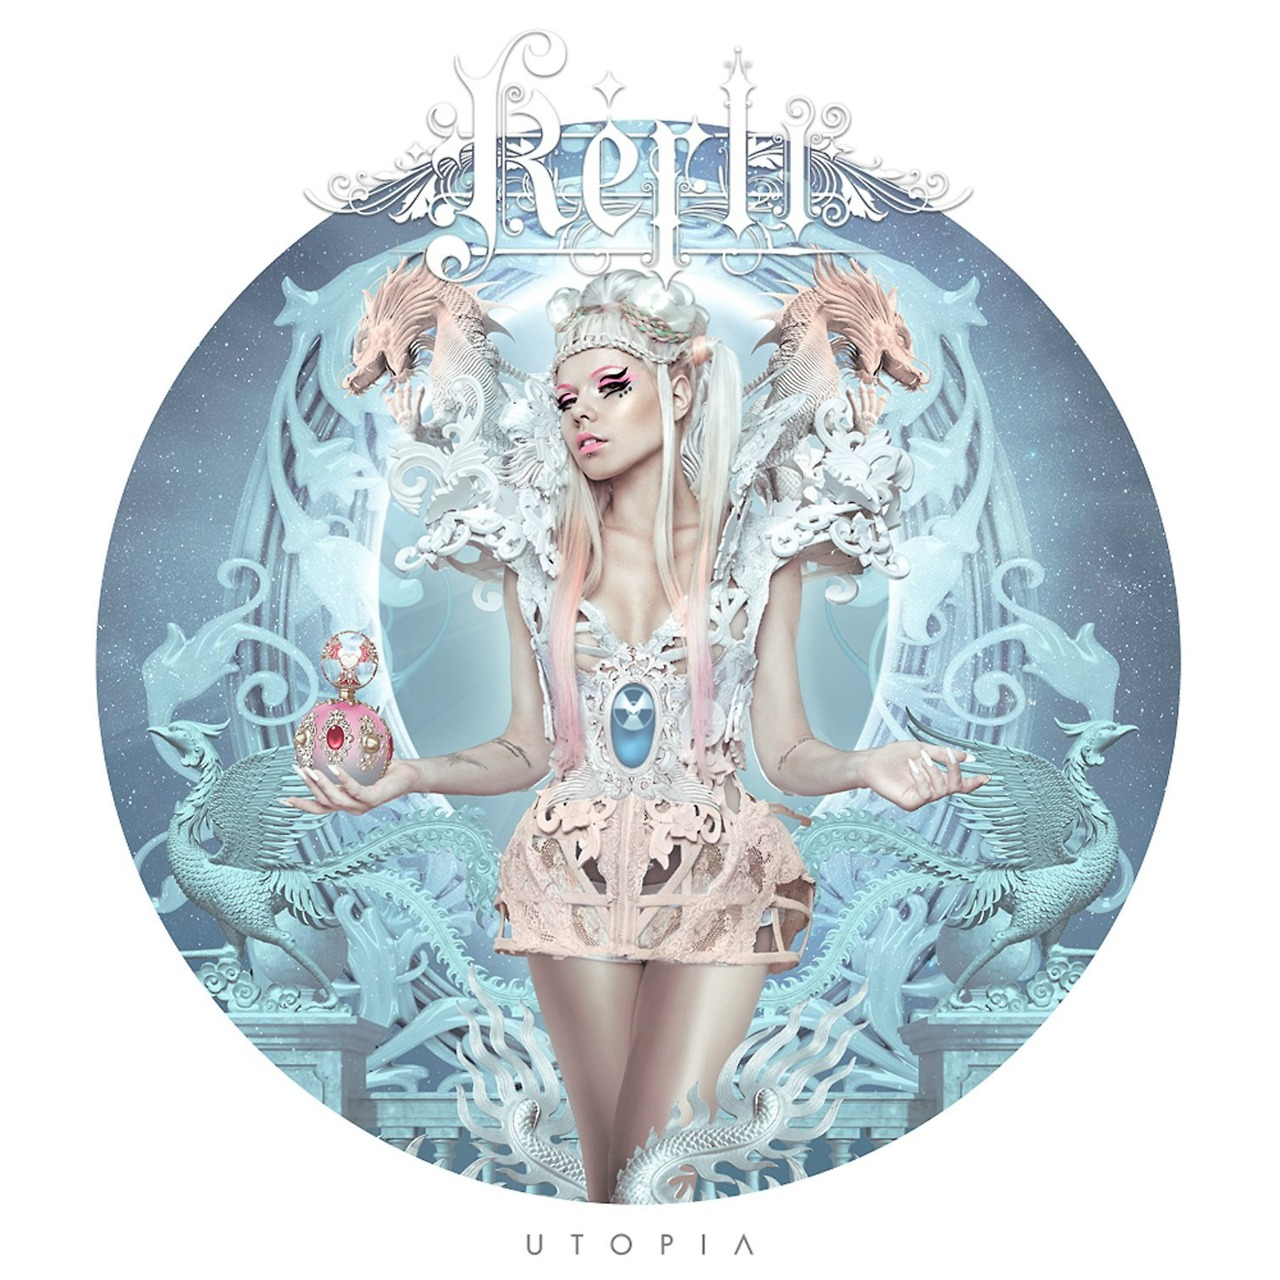 News Added Feb 27, 2013 Kerli's new EP (Official this time) Submitted By jlnsgr Track list: Added Feb 27, 2013 1. Can't Control The Kids 2. The Lucky Ones 3. Love Me Or Leave Me 4. Sugar 5. Here And Now 6. Chemical 7. The Lucky Ones (Syn Cole Vs. Kerli (Bonus Track)) Digital Booklet: […]